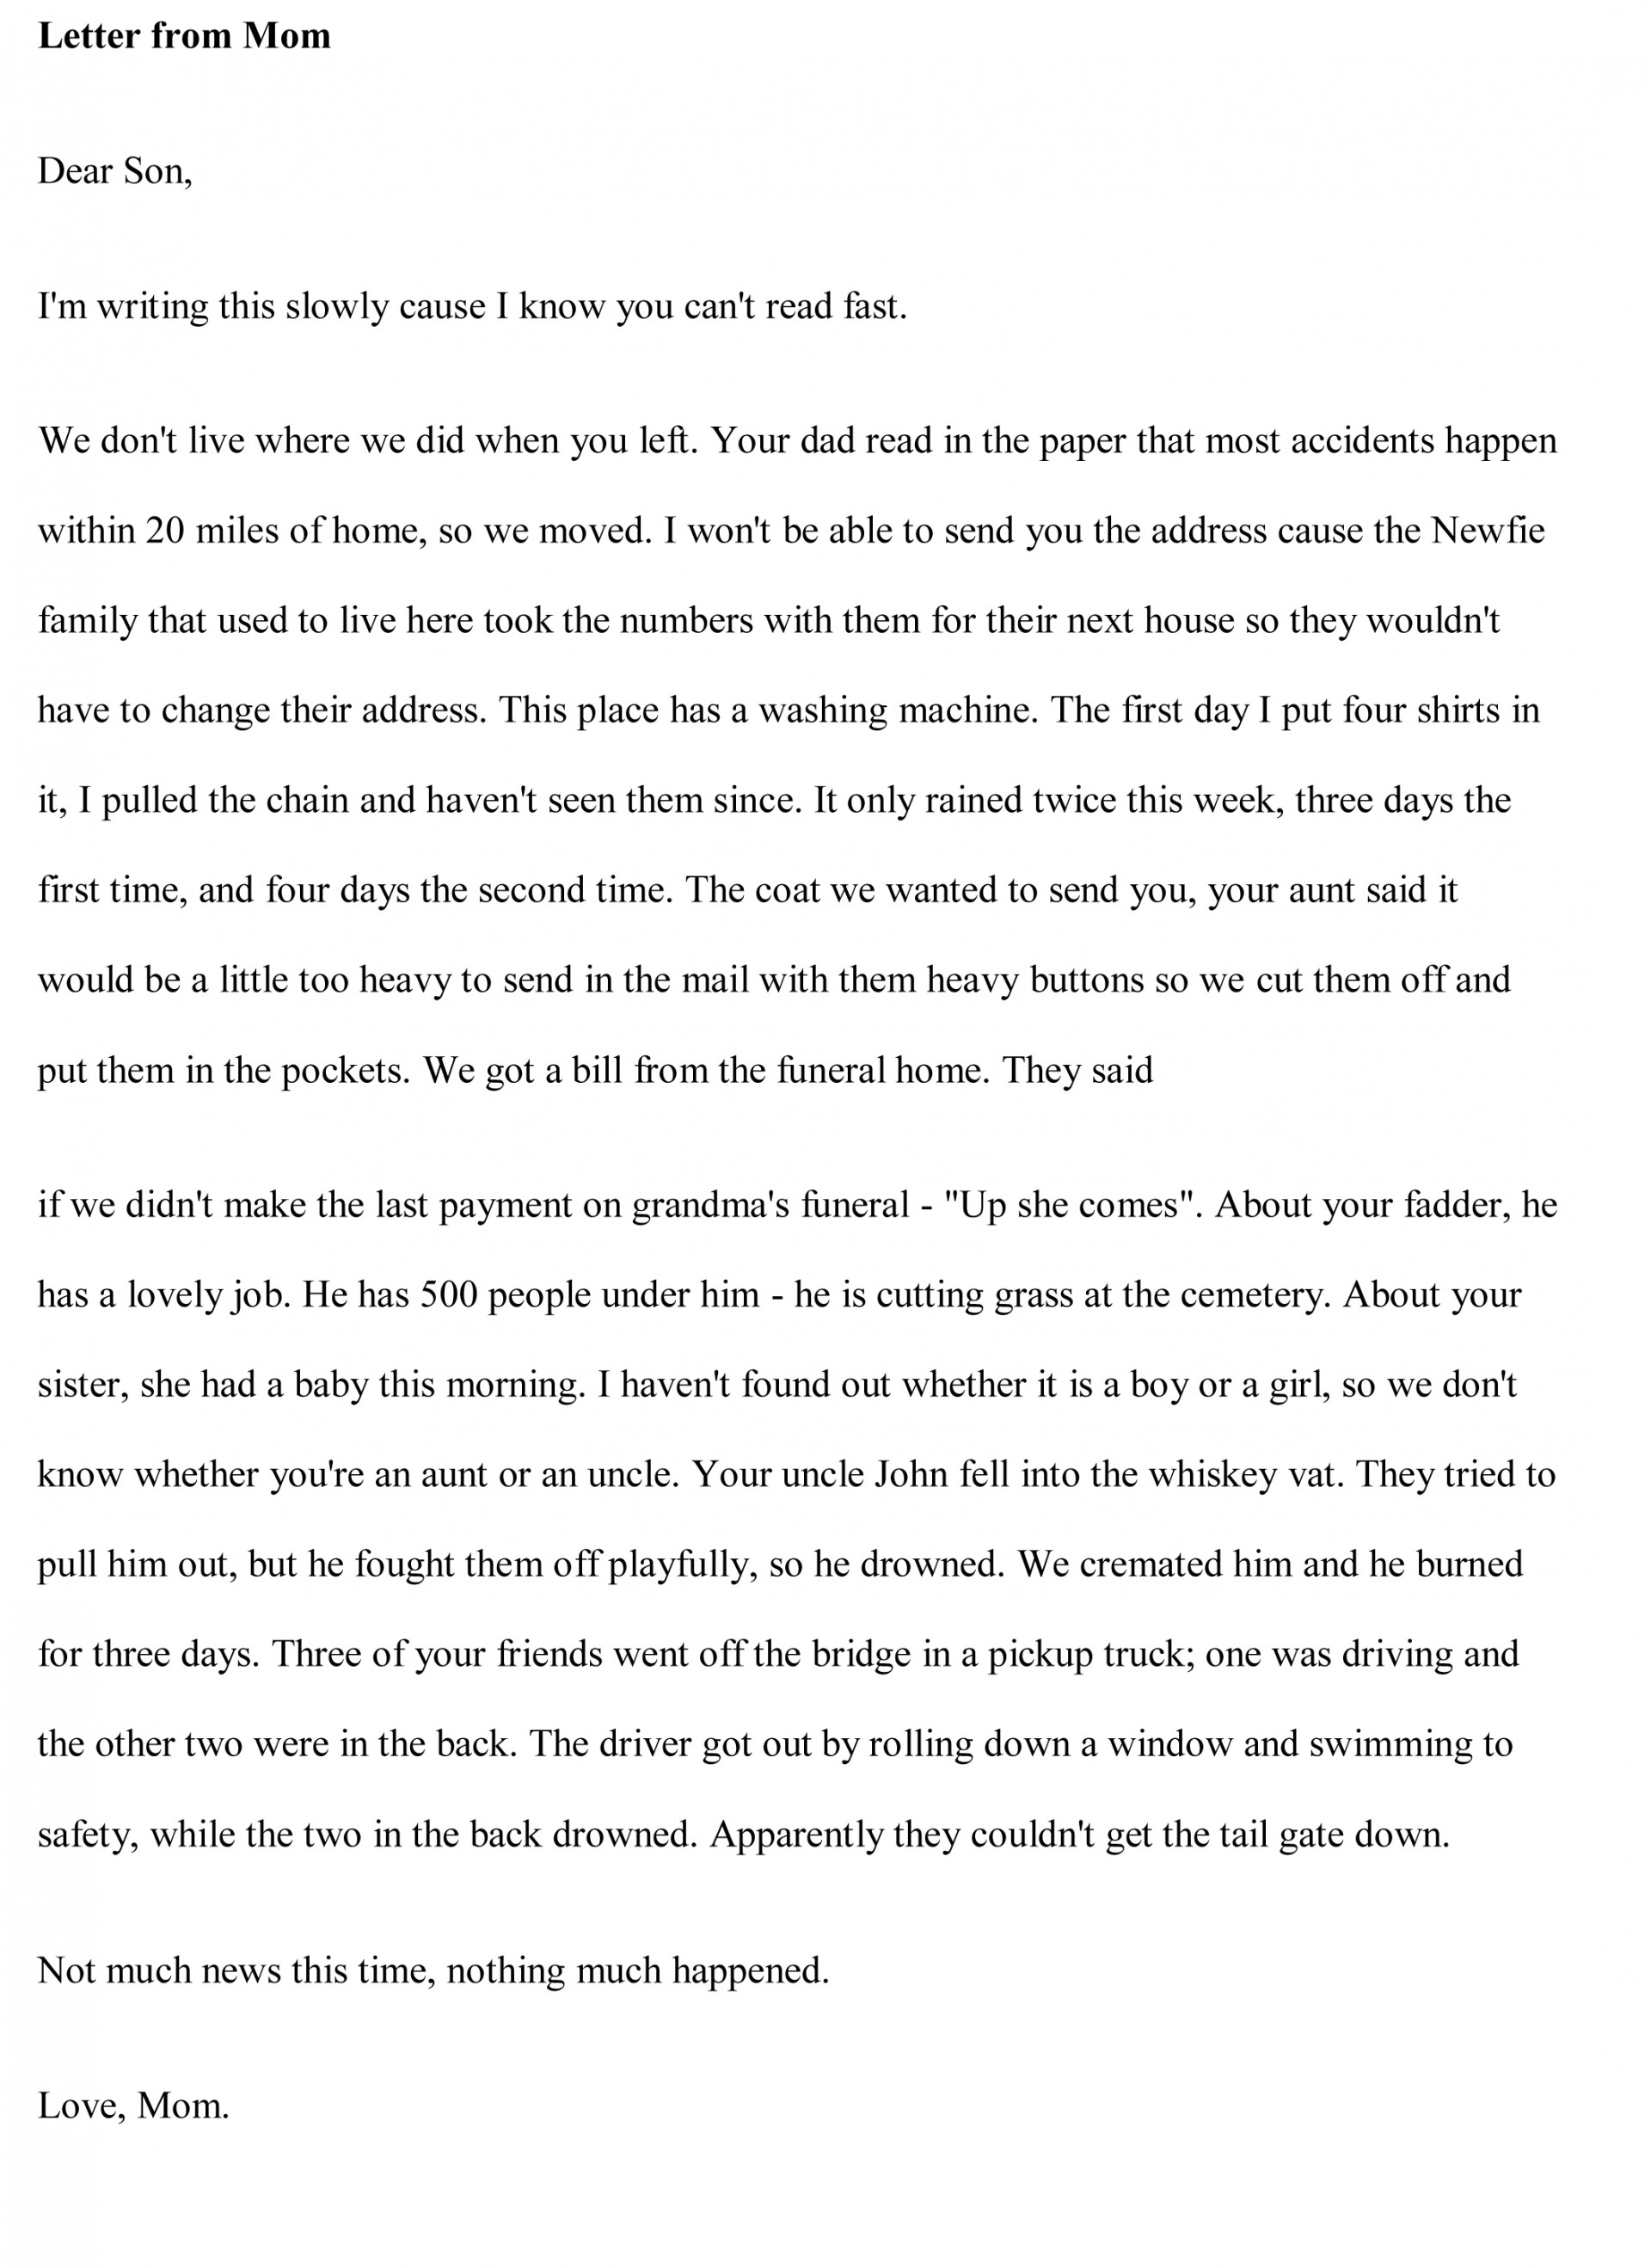 002 Informative Essay Definition Example Funny Free Outstanding 1920